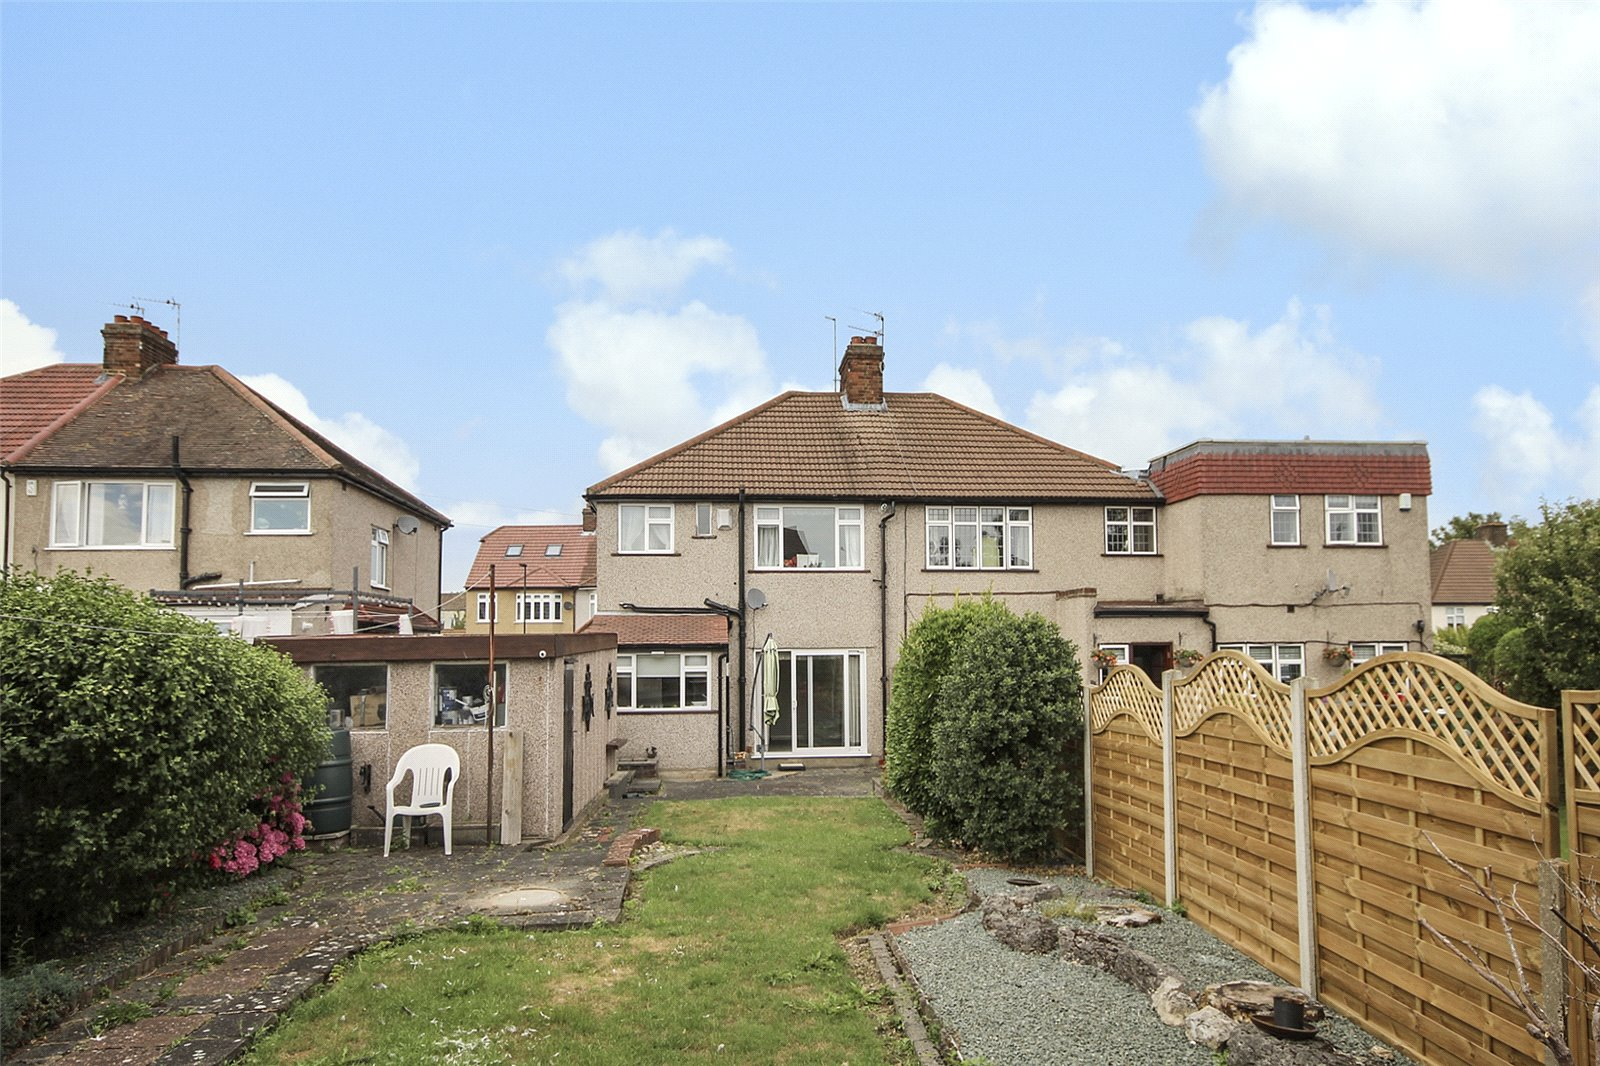 Faraday Road, Welling, Kent, DA16